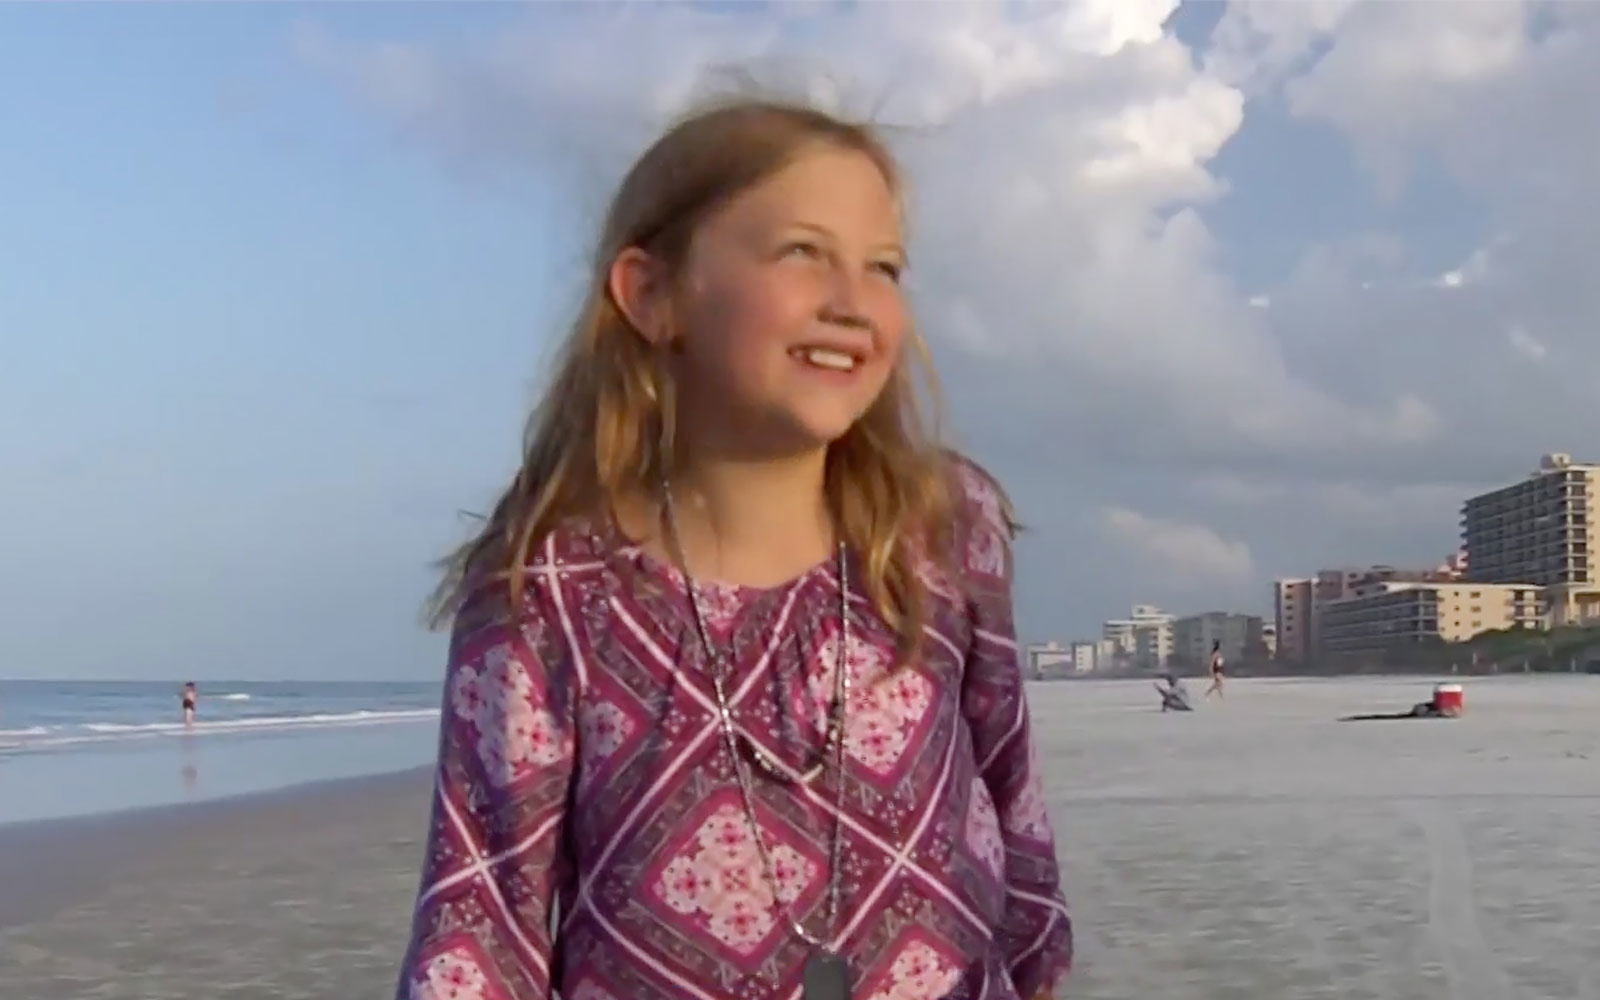 Maggie Crum , 9-year-old girl details frightening shark attack in knee-deep water